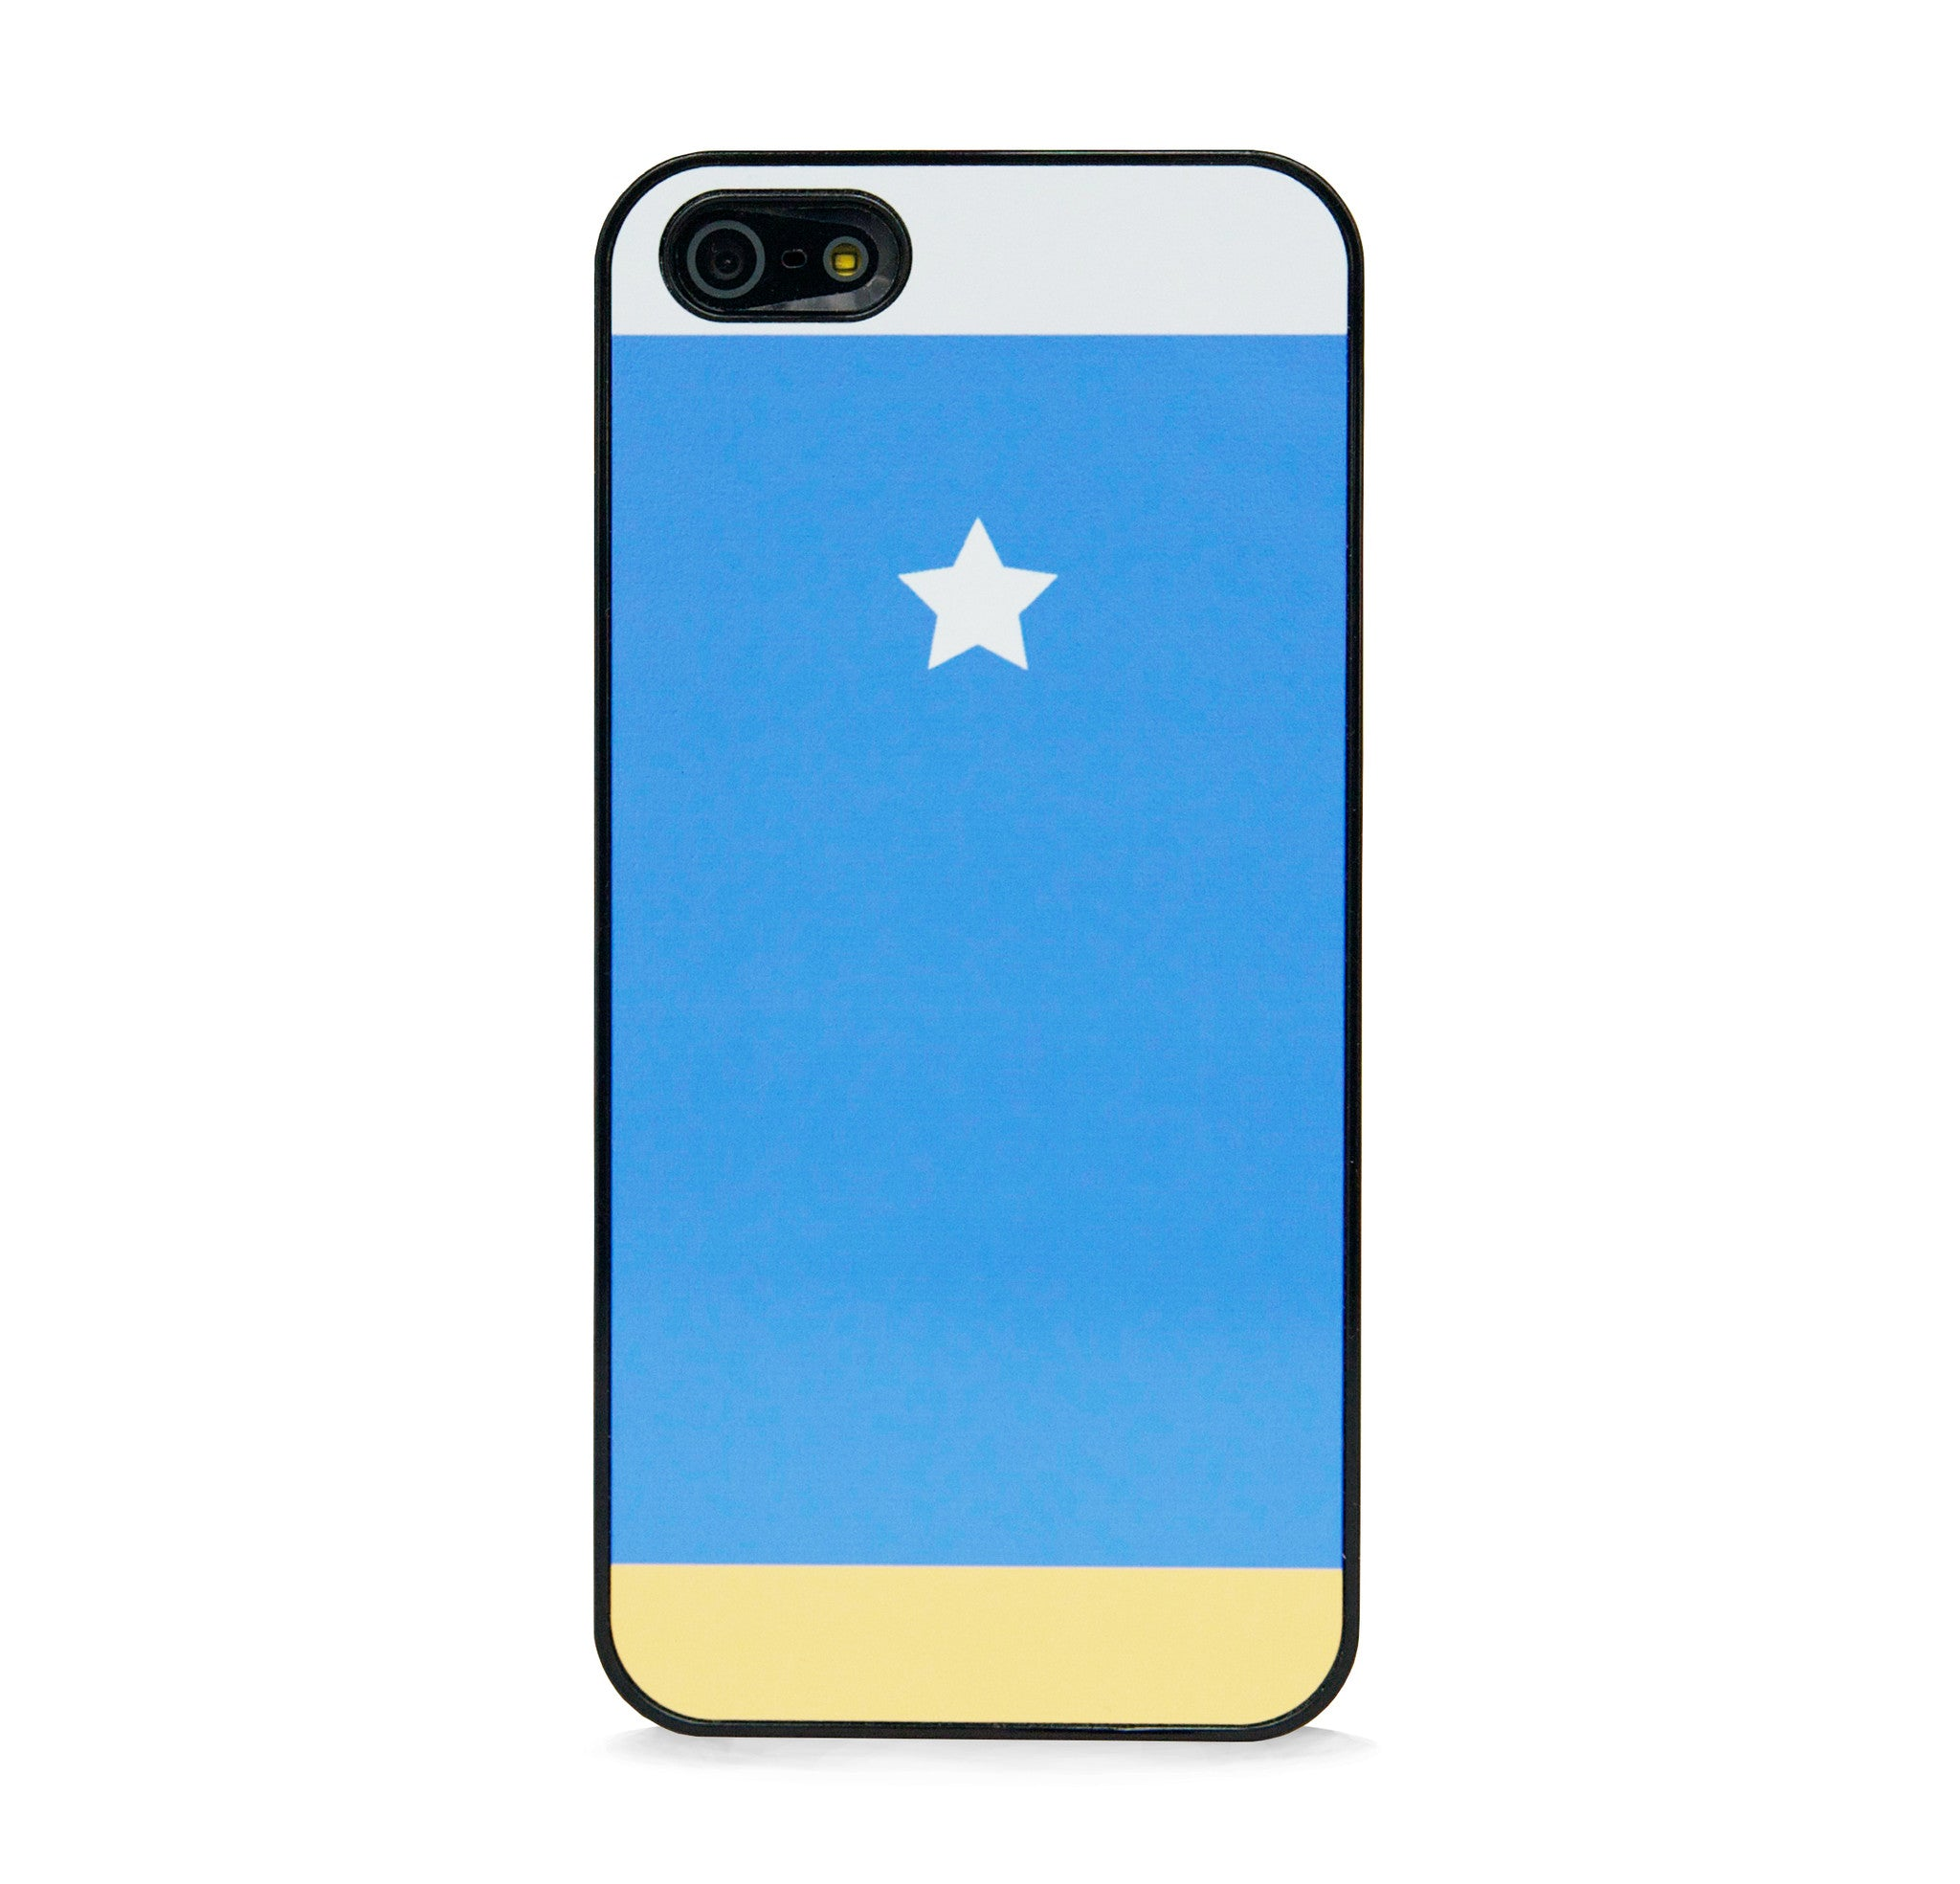 SYMBOL STAR COLOR BLOCK